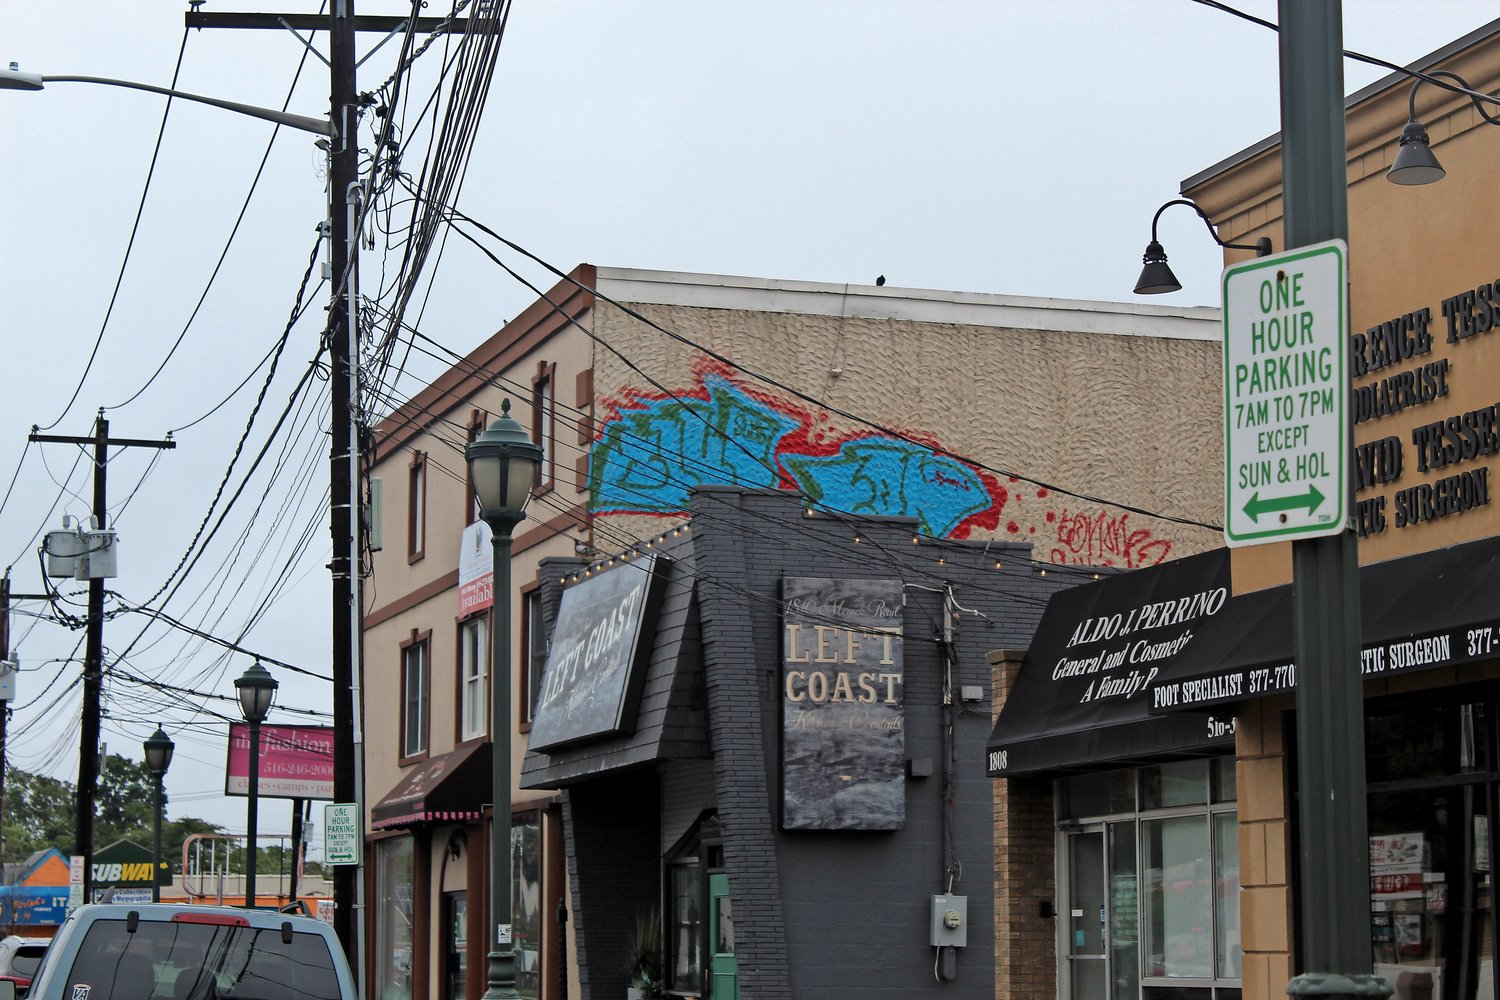 A sidewalk view of the graffiti, which is located on a wall above Left Coast Kitchen & Cocktails.